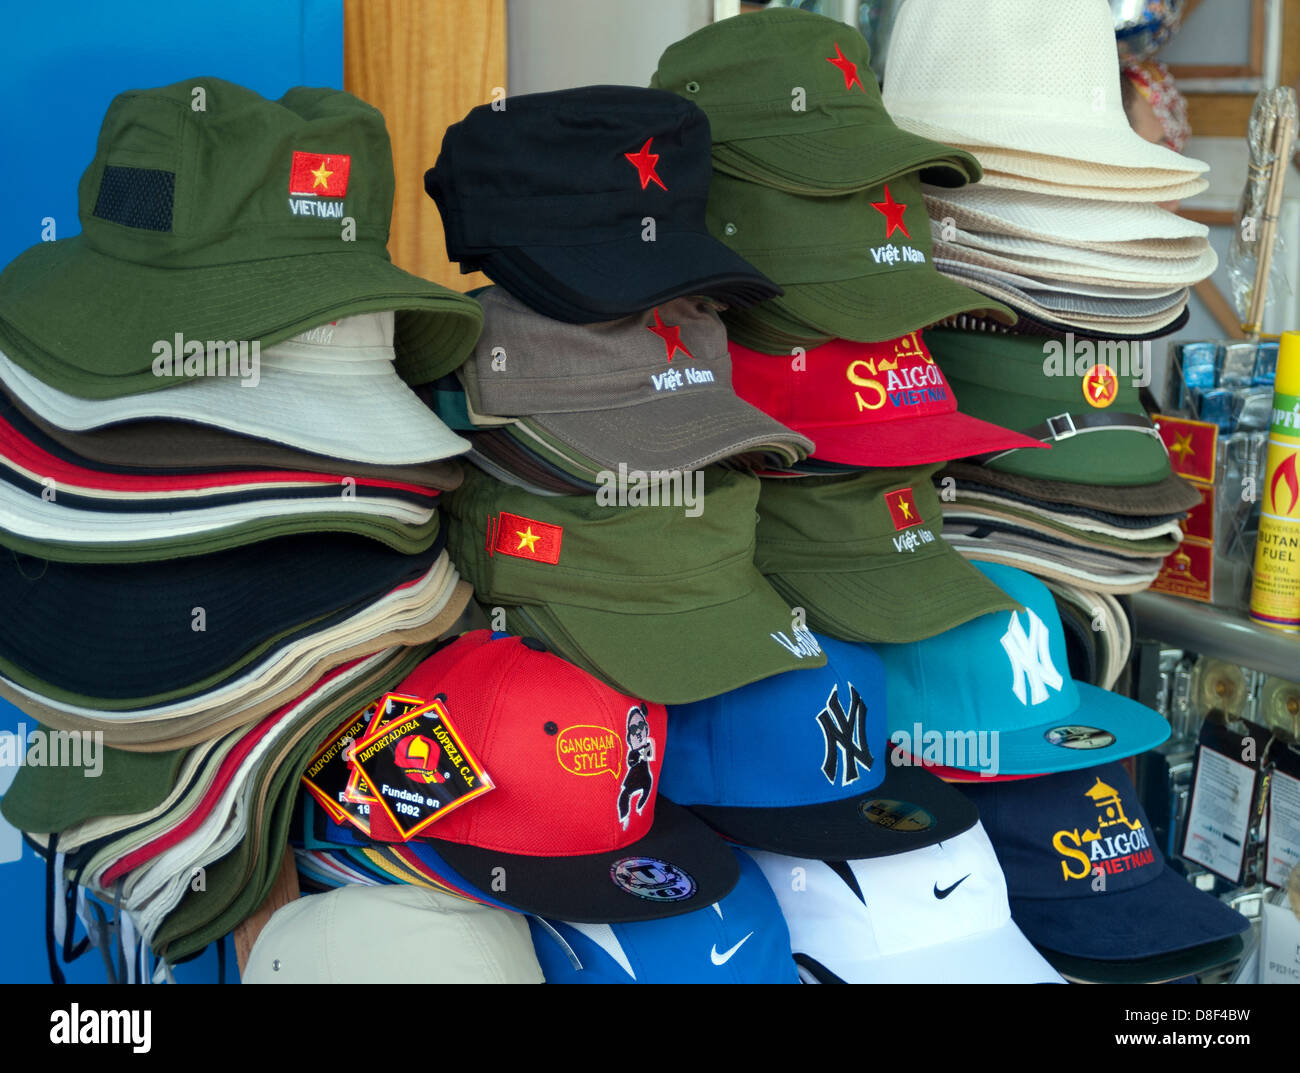 Baseball Hats Stock Photos   Baseball Hats Stock Images - Page 2 - Alamy 74a4e08f601e